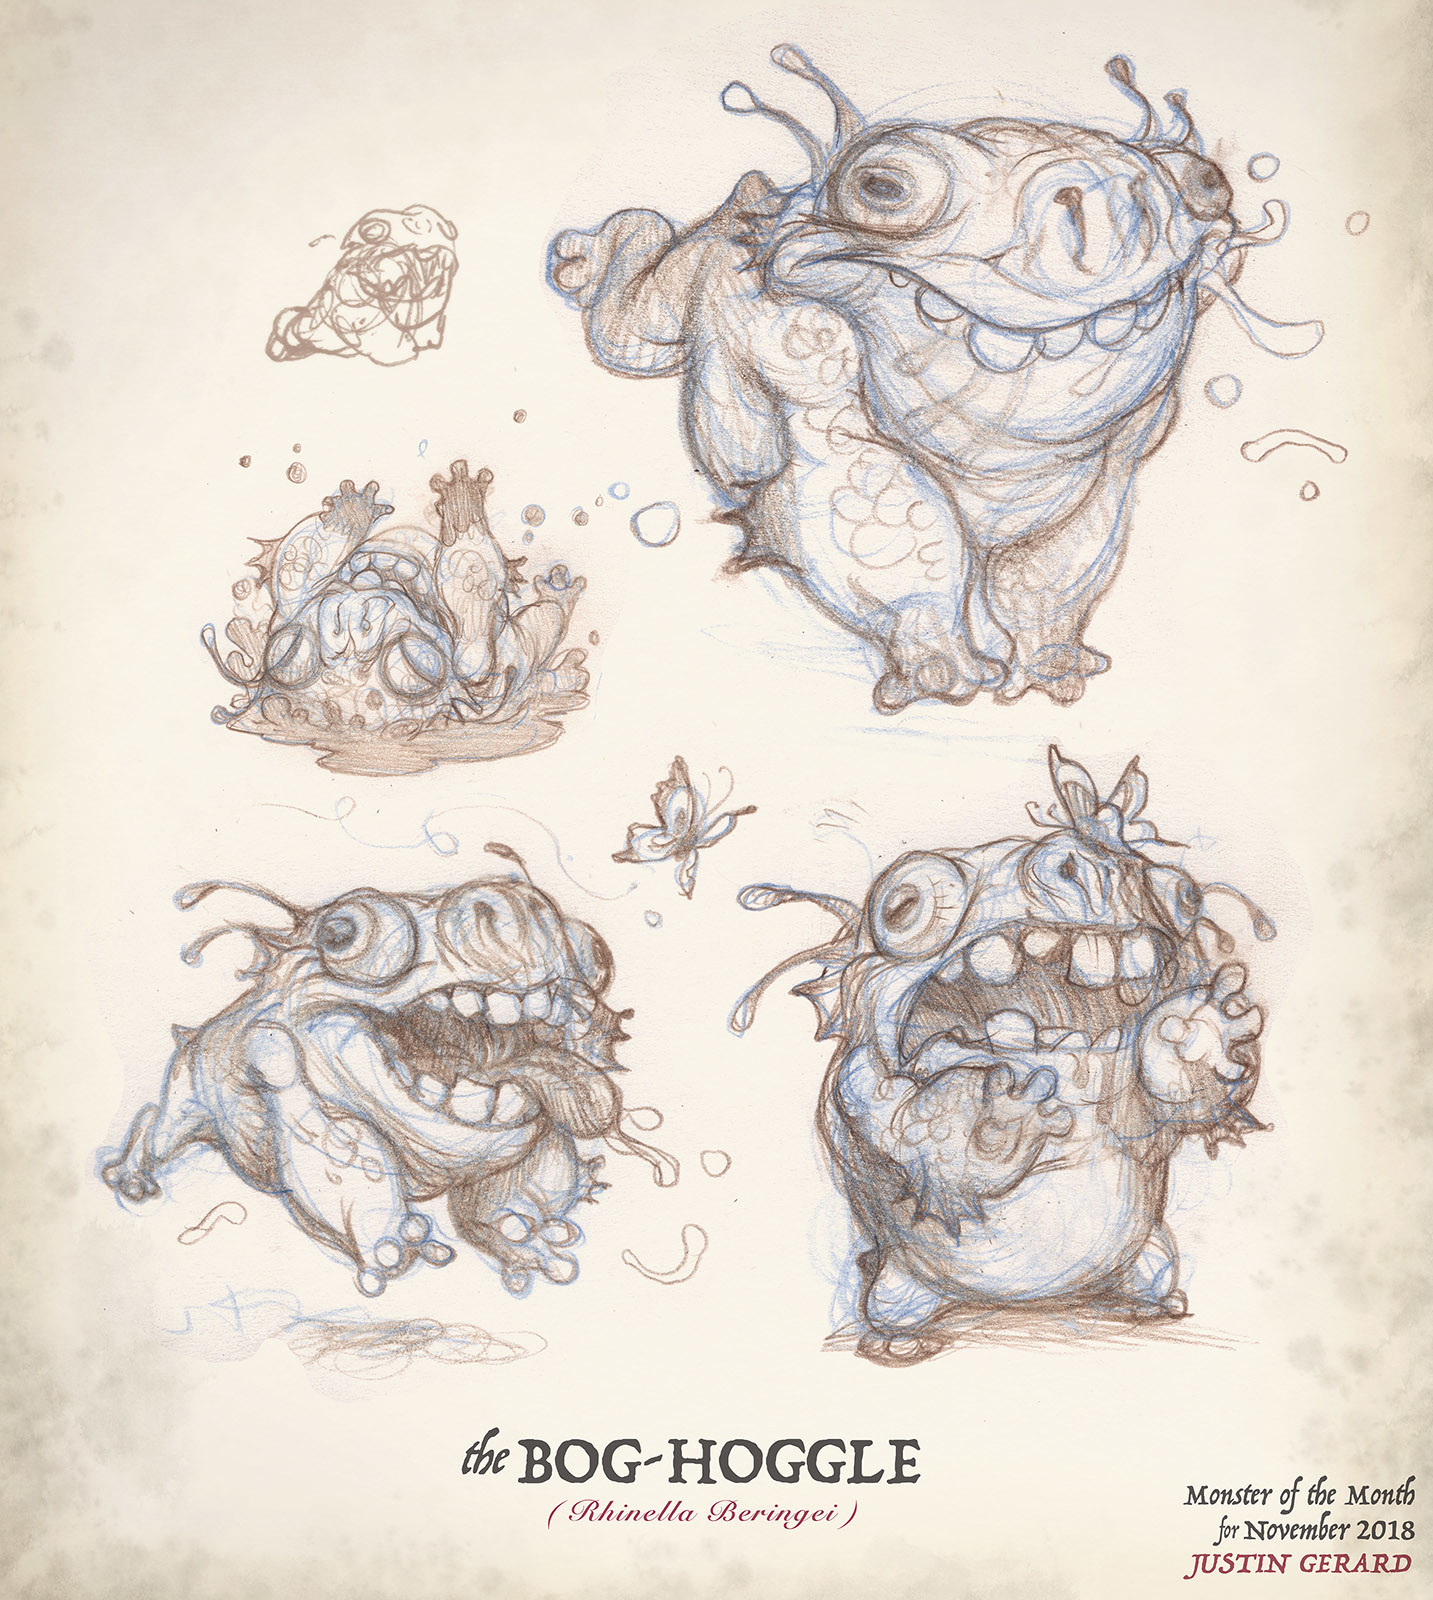 Studies for the Bog-Hoggle. Traditional color pencil on paper